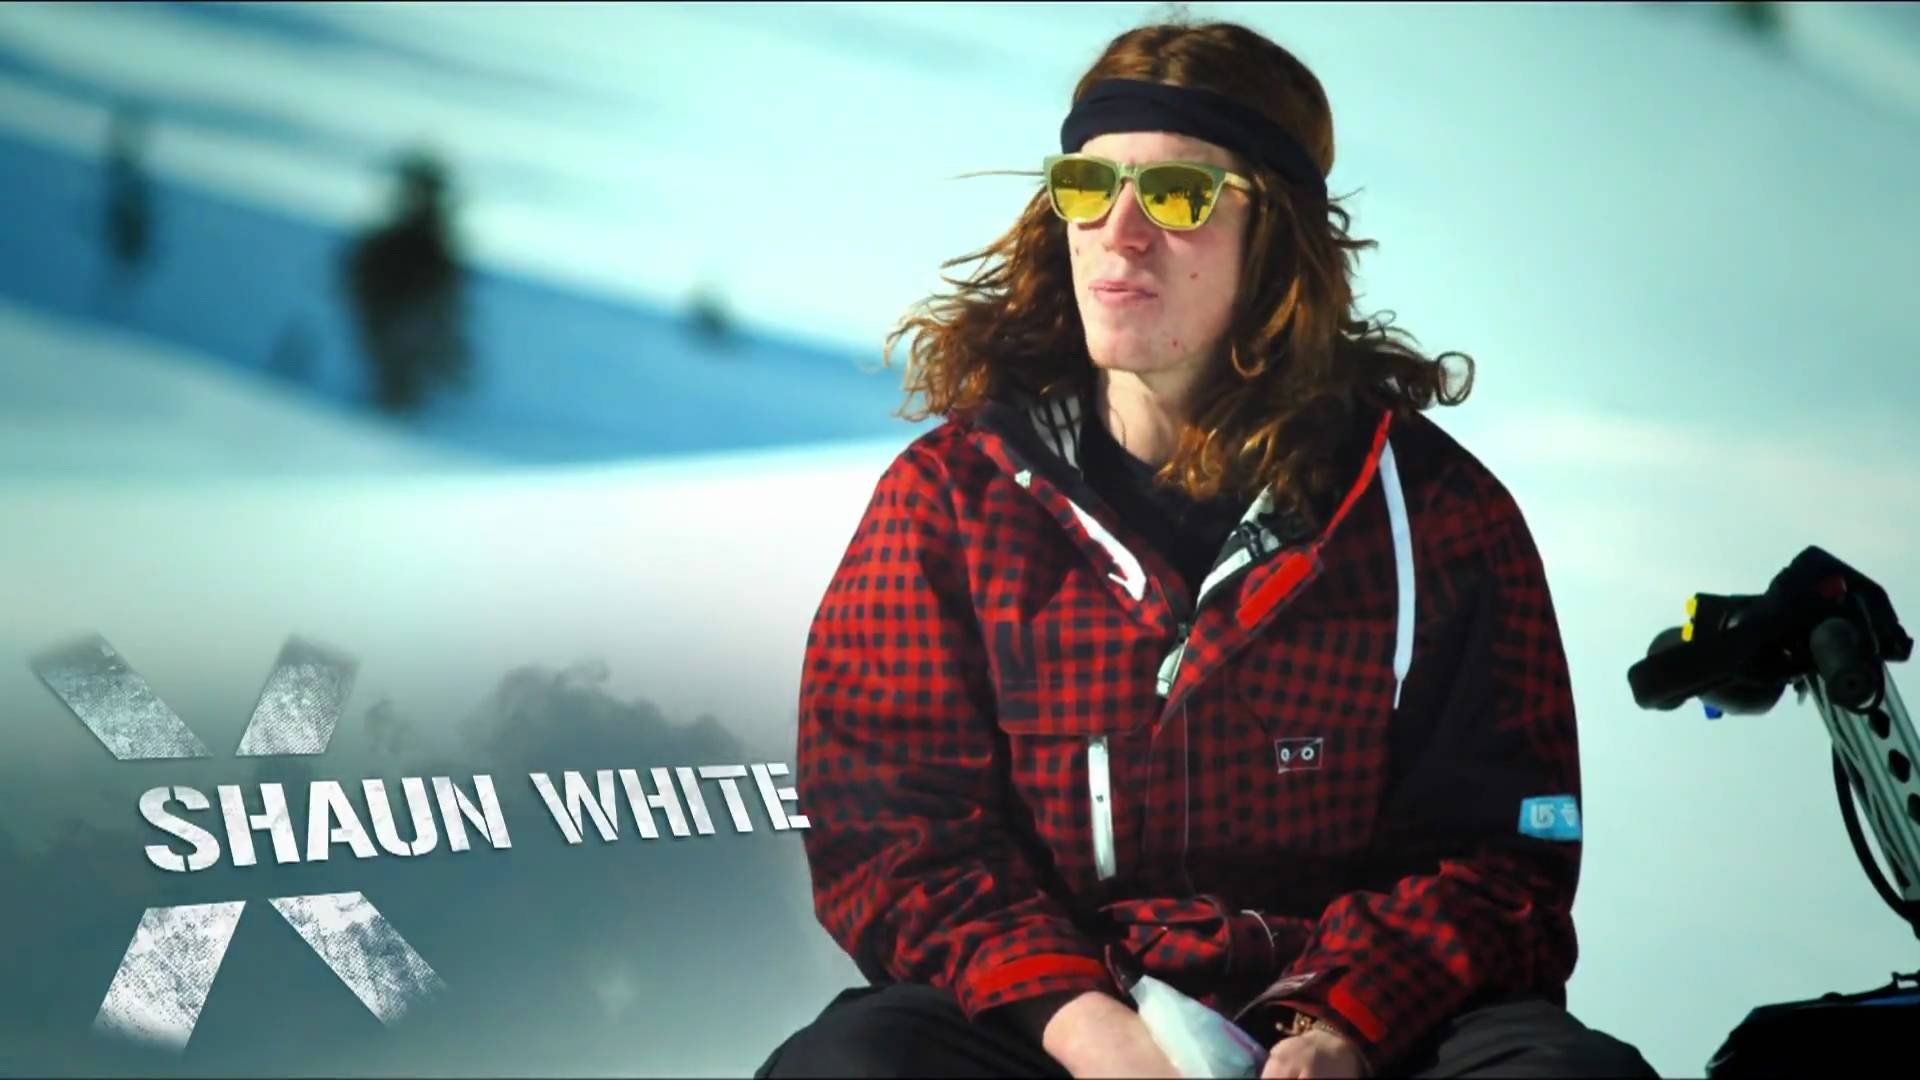 Wallpapers For Shaun White Double Cork Wallpaper | www ...